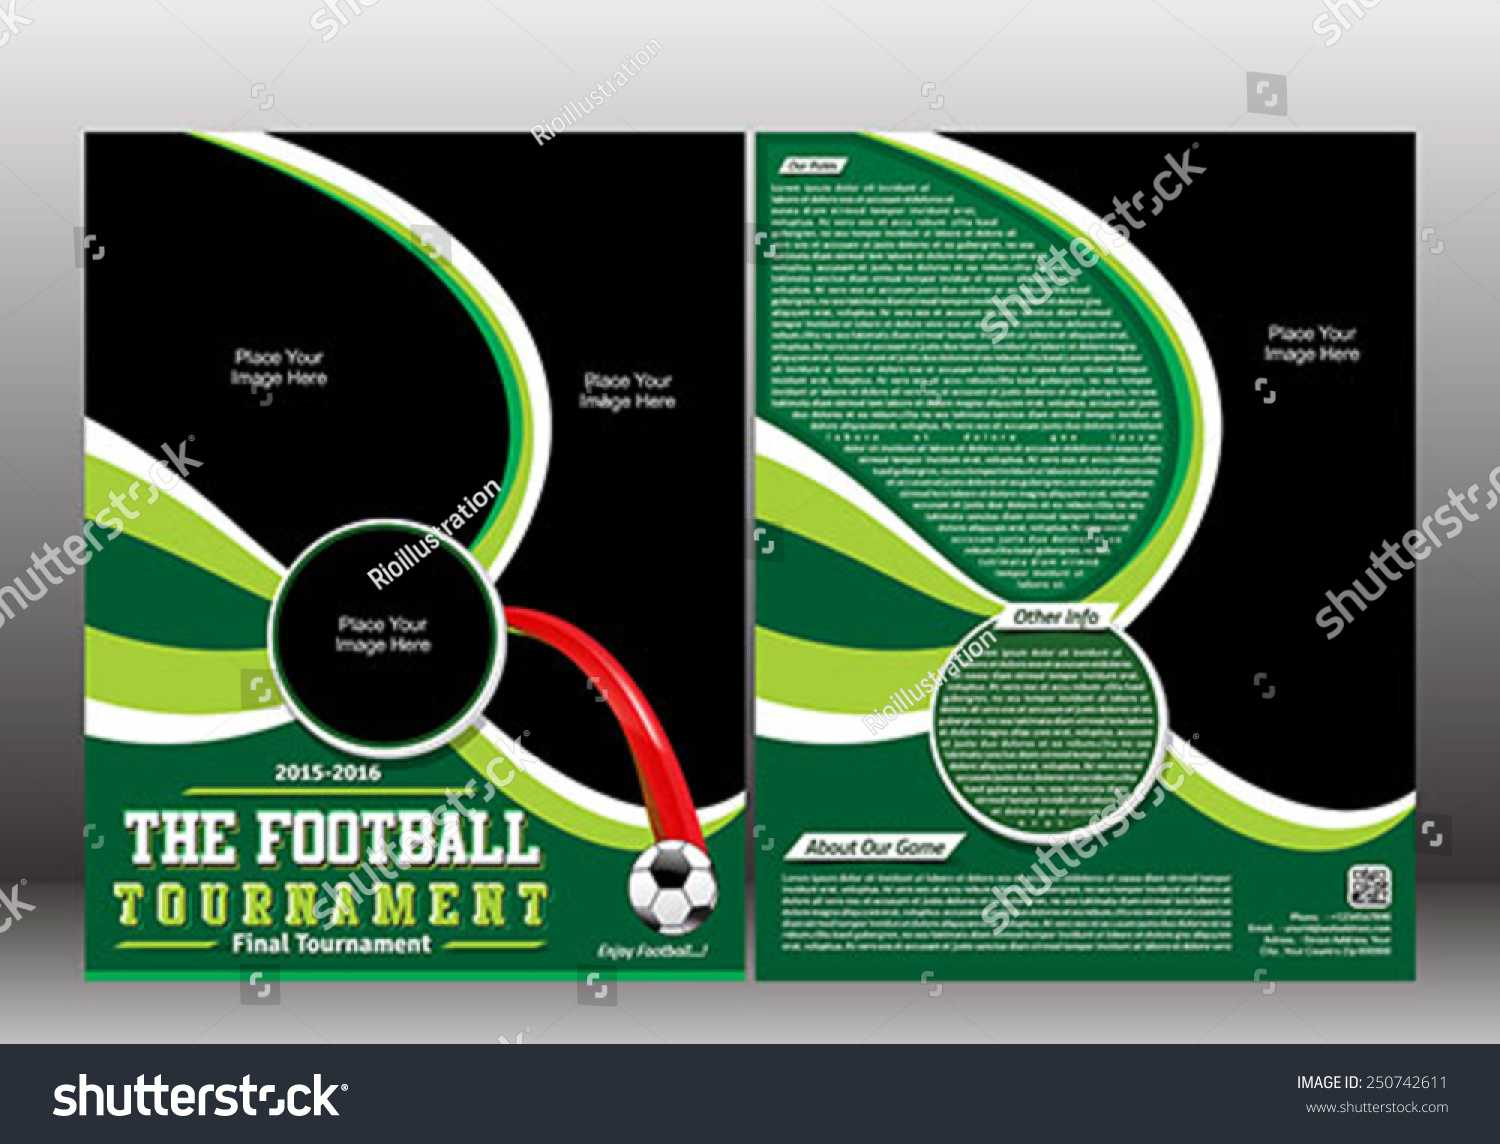 Football Tournament Flyer Template Vector Illustration Stock Regarding Football Tournament Flyer Template